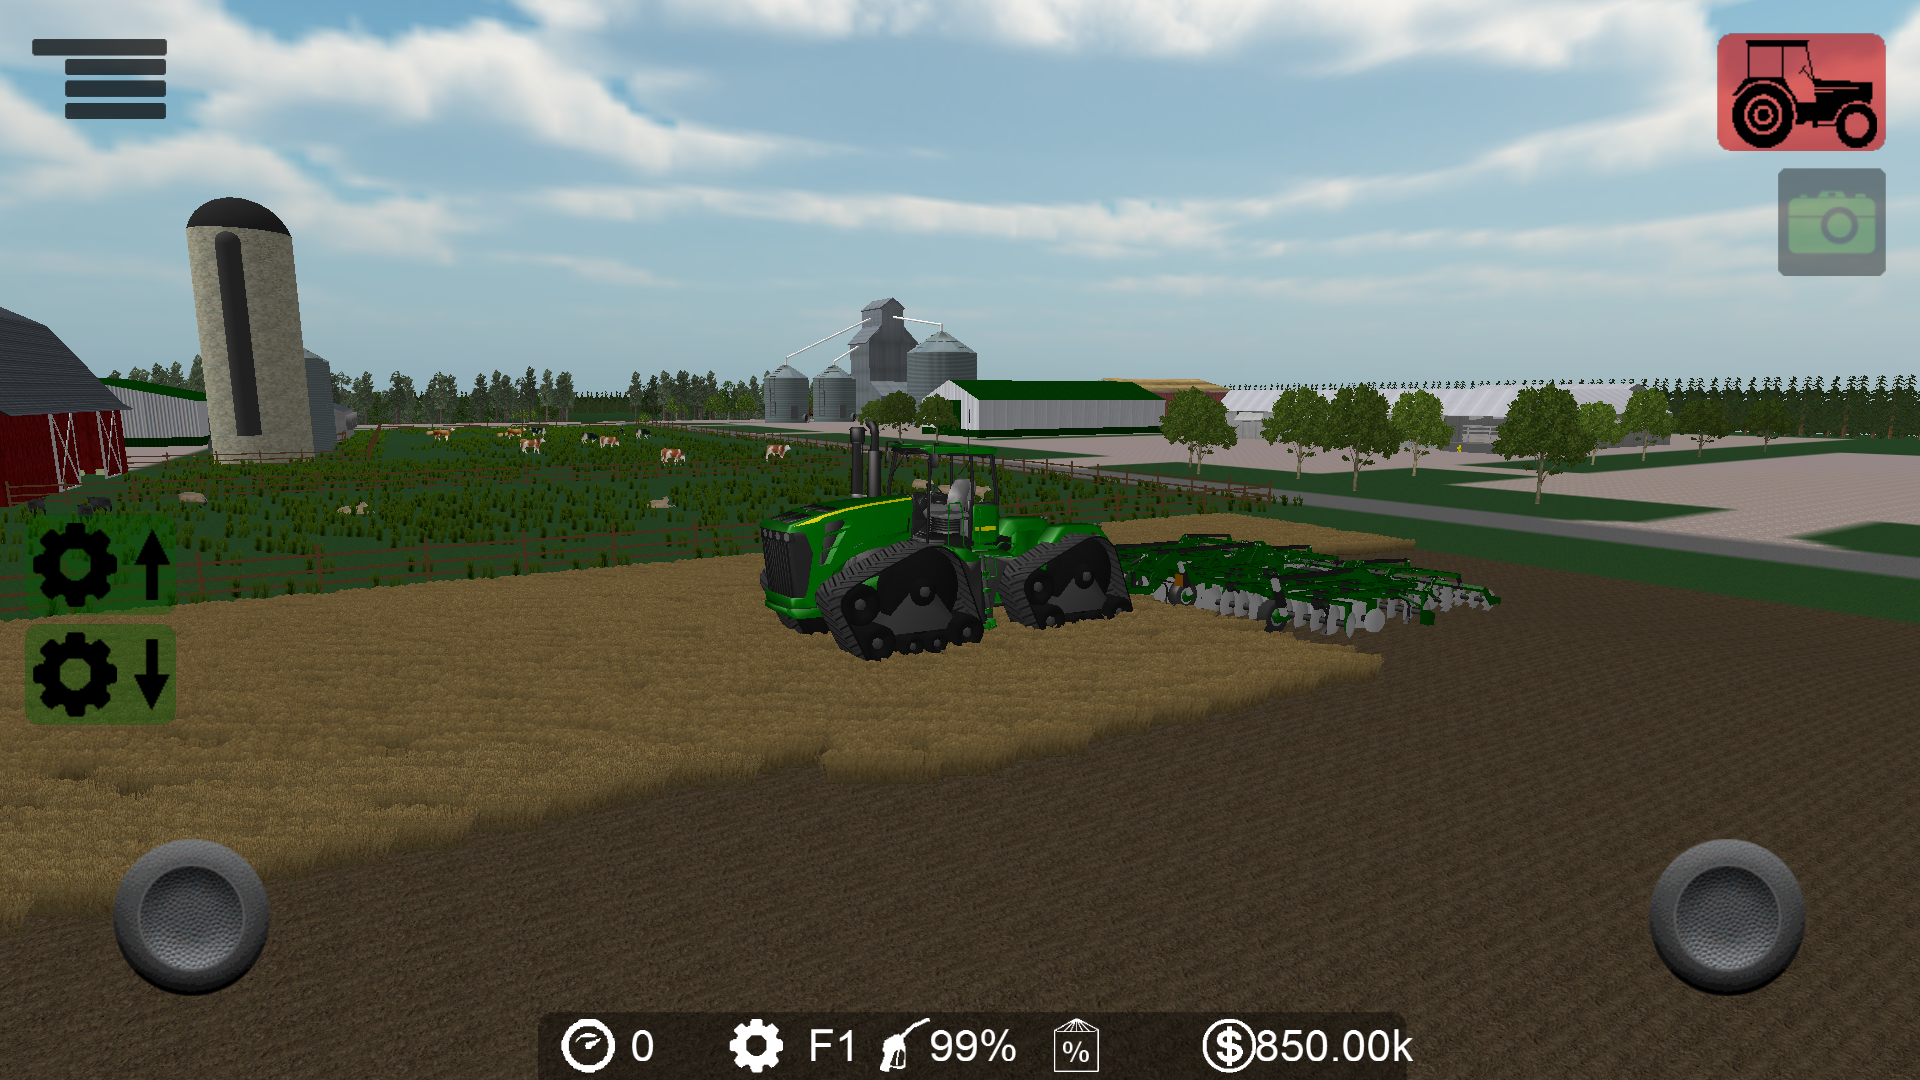 Amazon.com: Farming USA: Appstore for Android